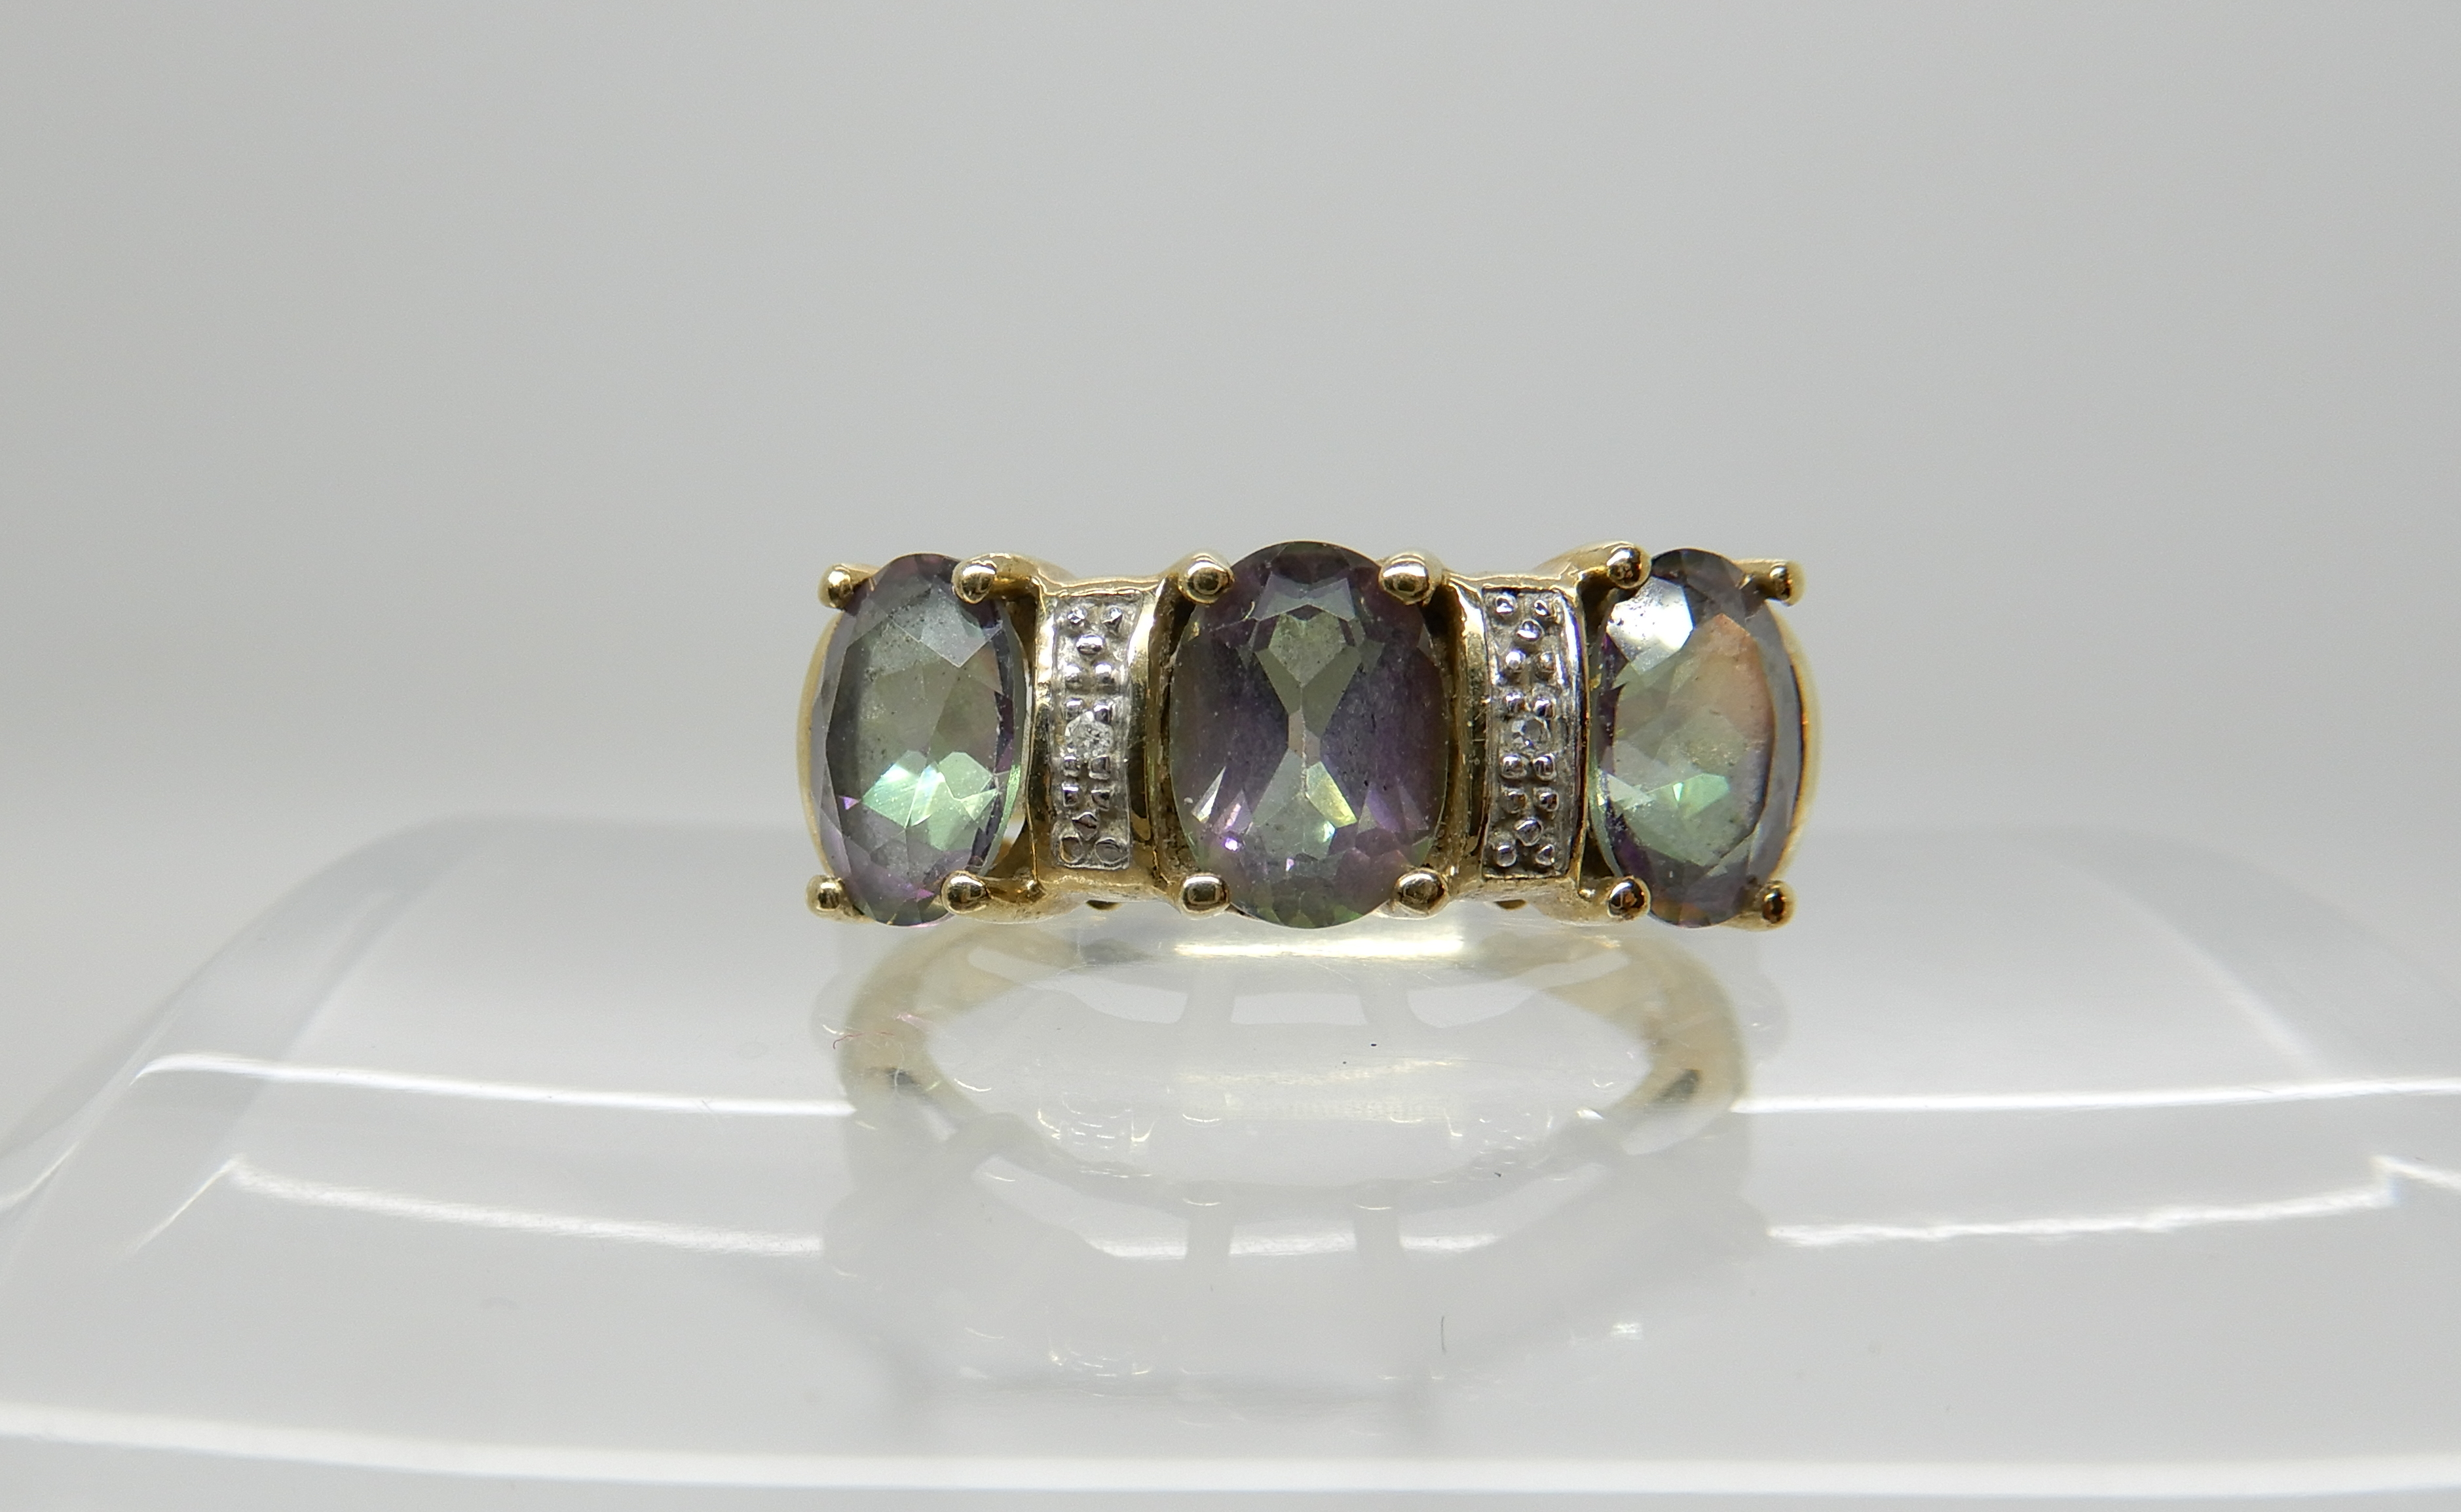 Lot 20 - A 9ct gold mystic topaz and diamond accent ring, size N1/2, weight 4.1gms Condition Report: